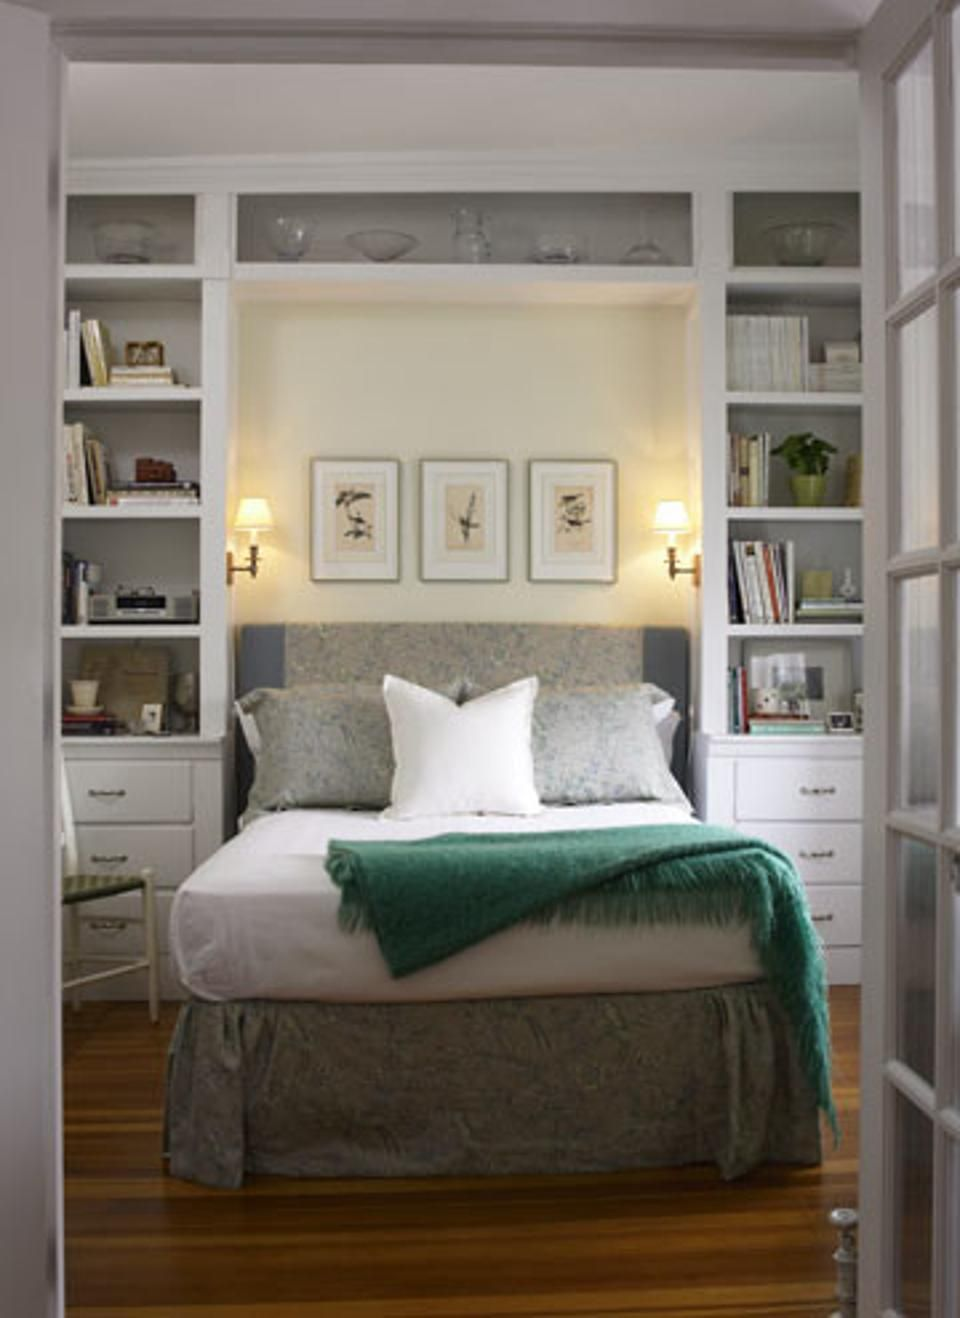 Turn A Compact Space Into A Brilliant Boudoir With These Decorating Storage And Layout Techniques More